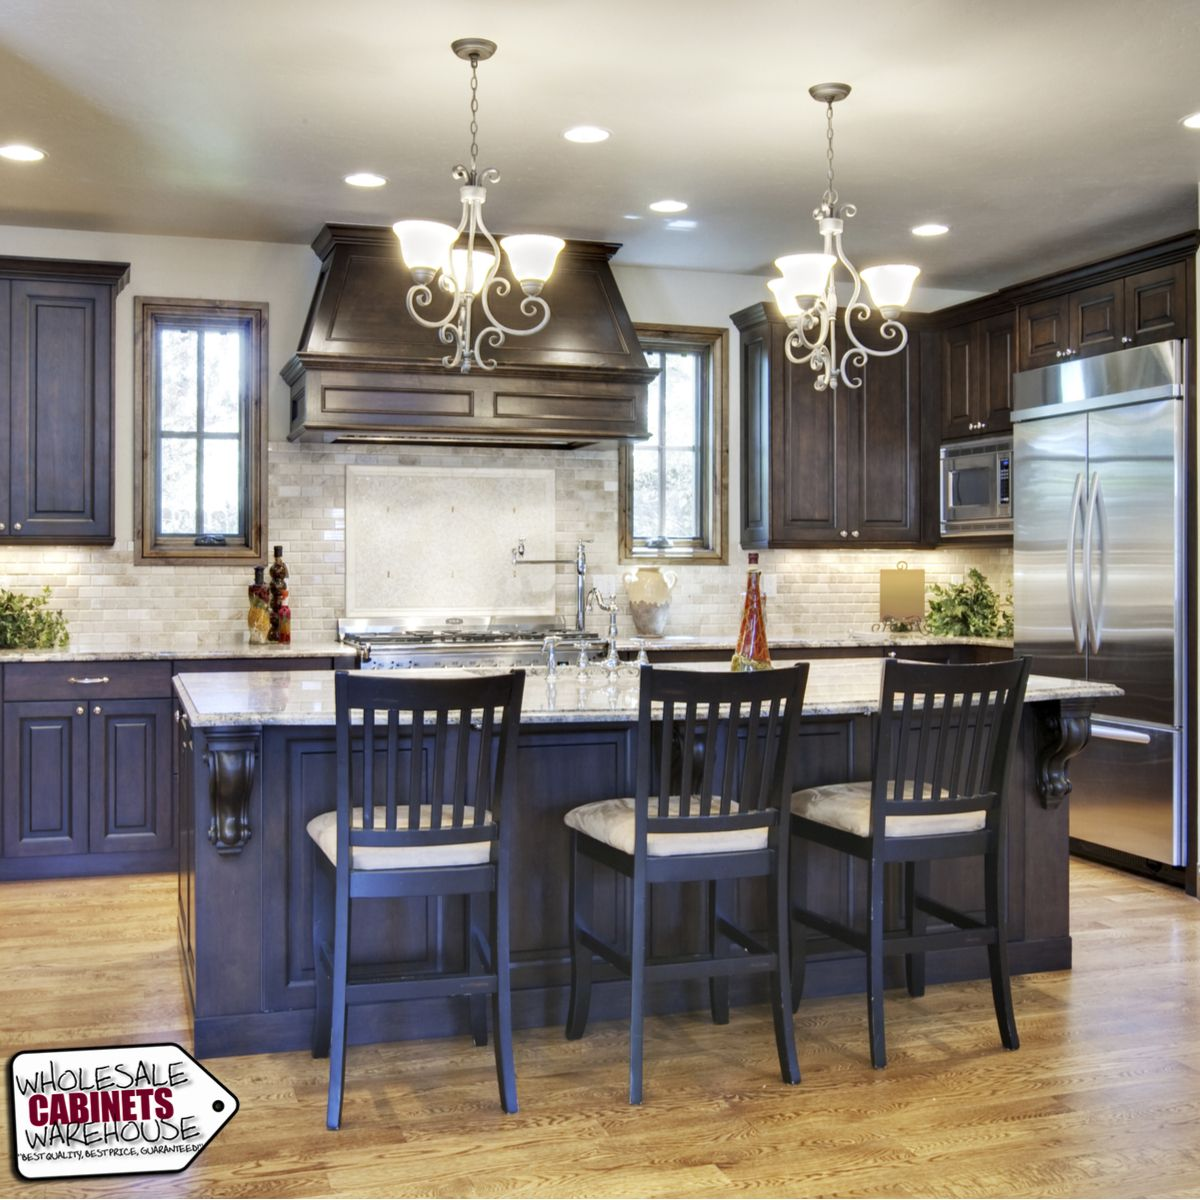 WCW supplies your kitchen with classy, elegant cabinetry ...